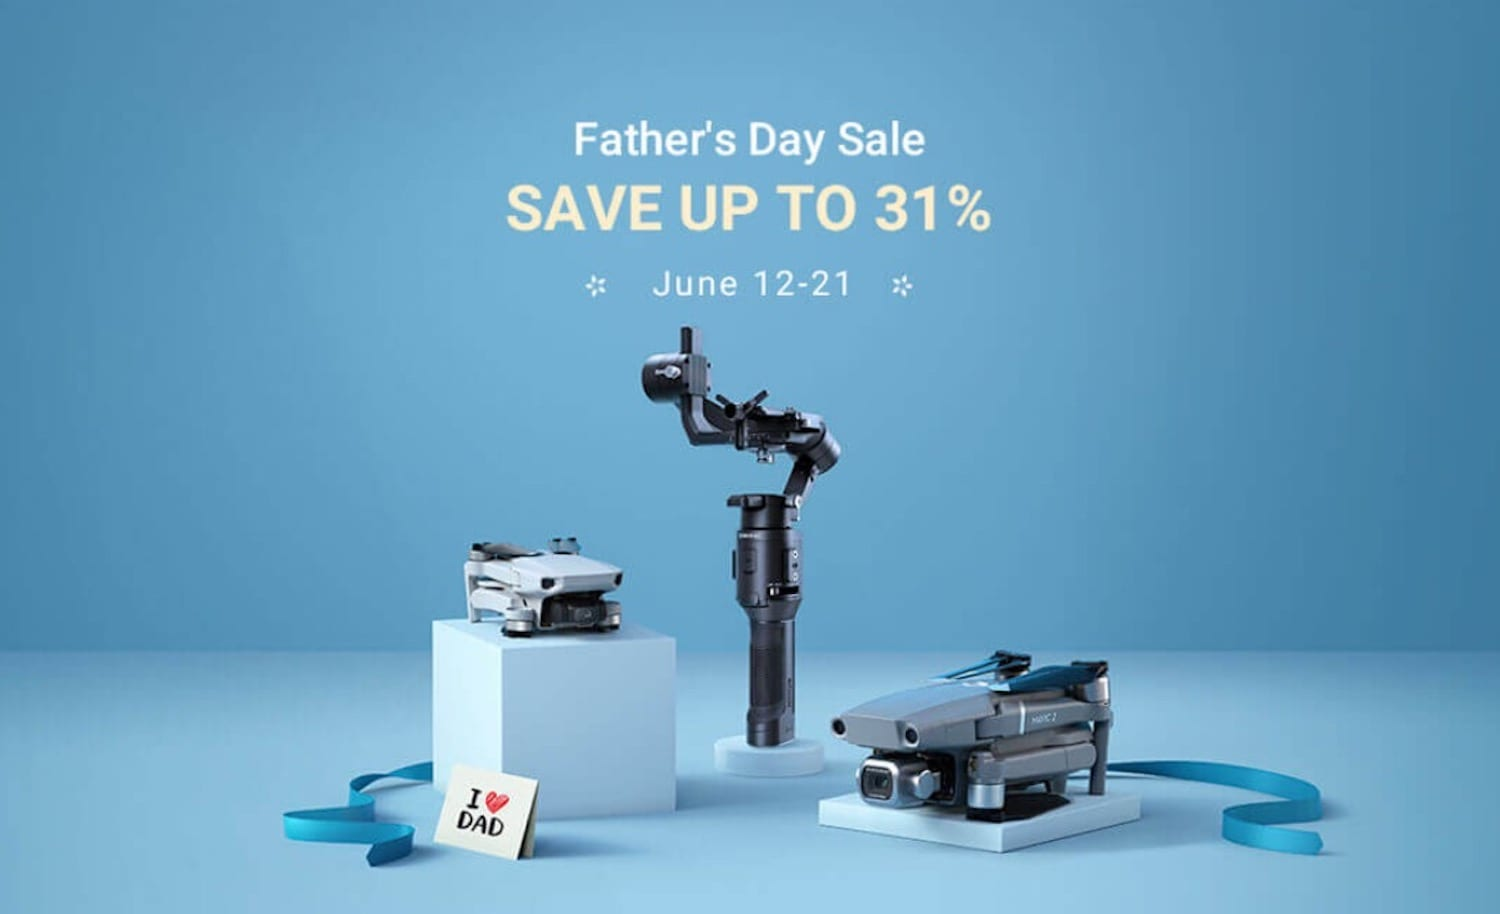 DJI announces Father's Day Sale with discounts up to 31%